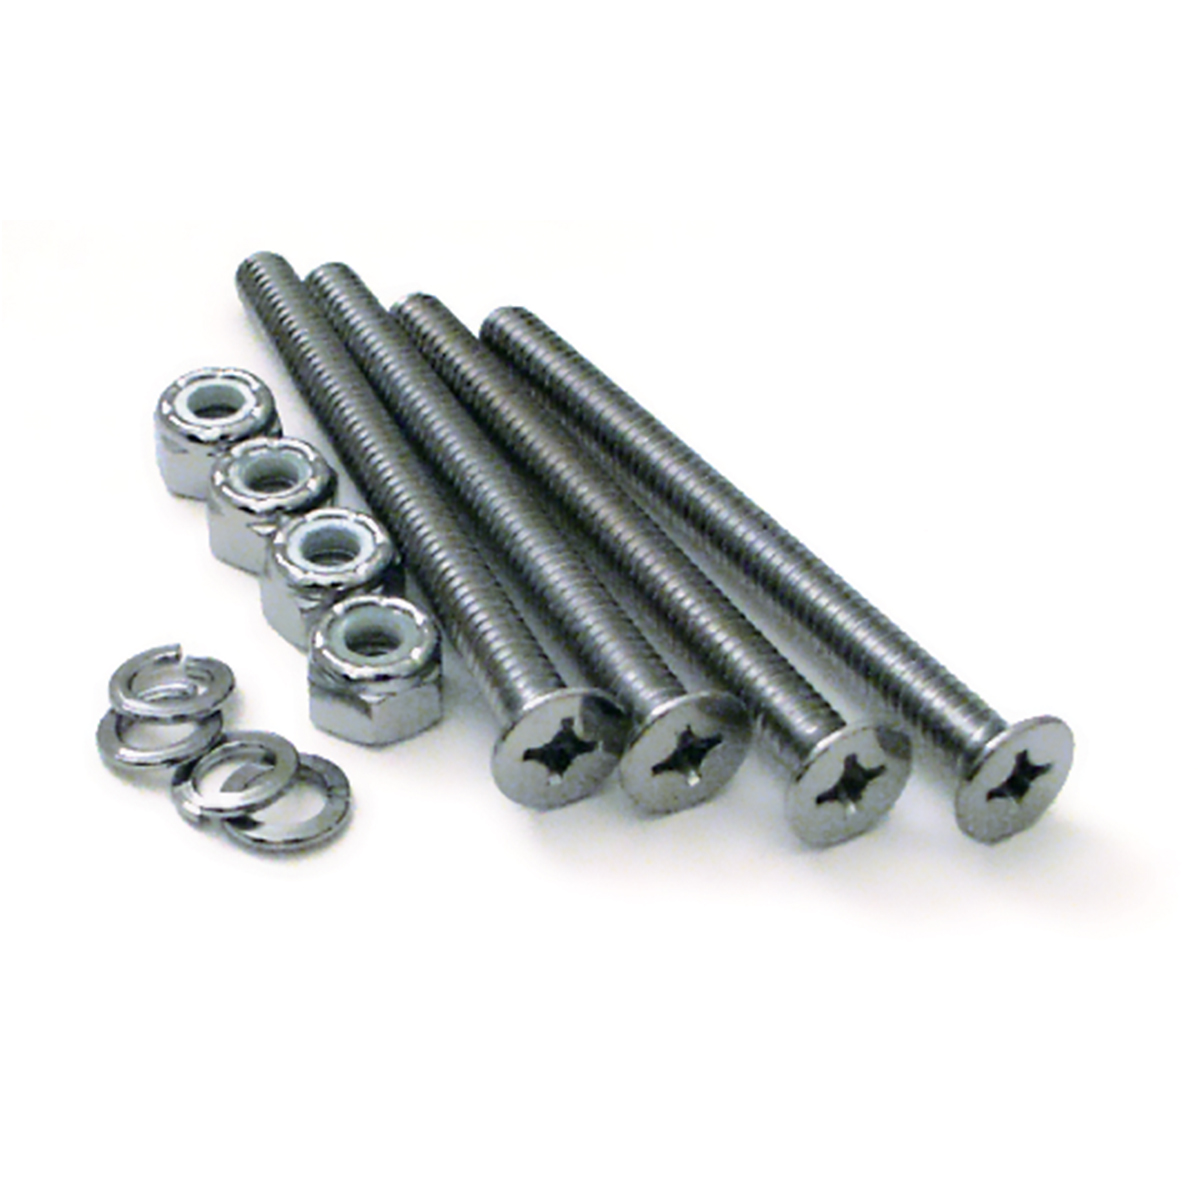 "Train Horn Floor Mount Stand Screw Set – ¼"" dia. x 3"" long"